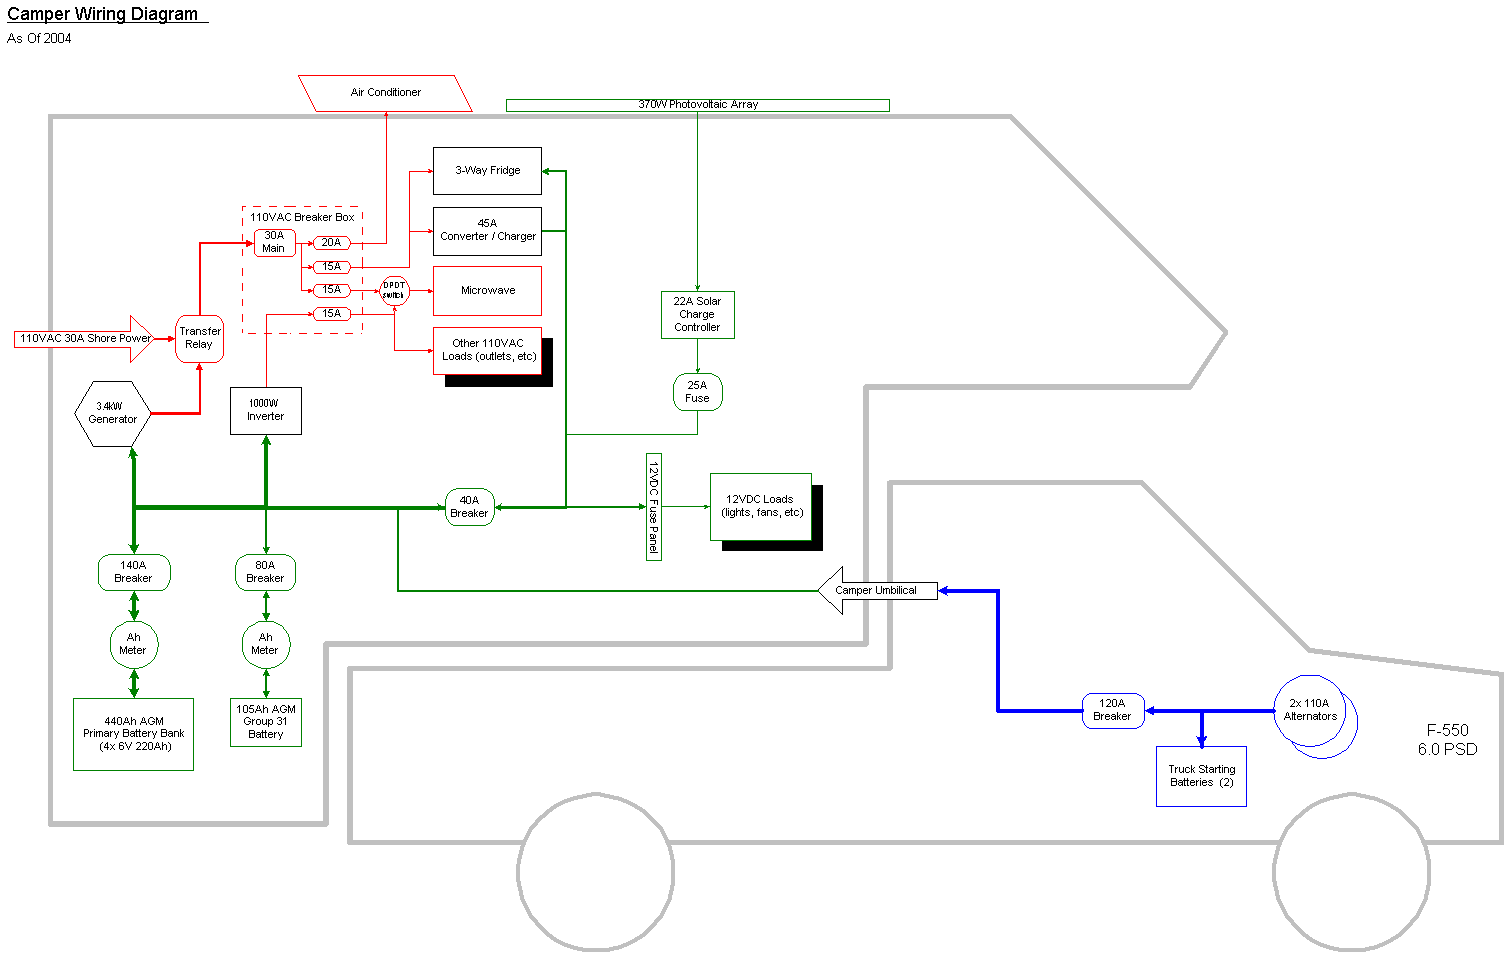 2004Diagram camper wiring diagram camper wiring diagram vw 1969 \u2022 wiring camper trailer wiring diagrams at gsmx.co